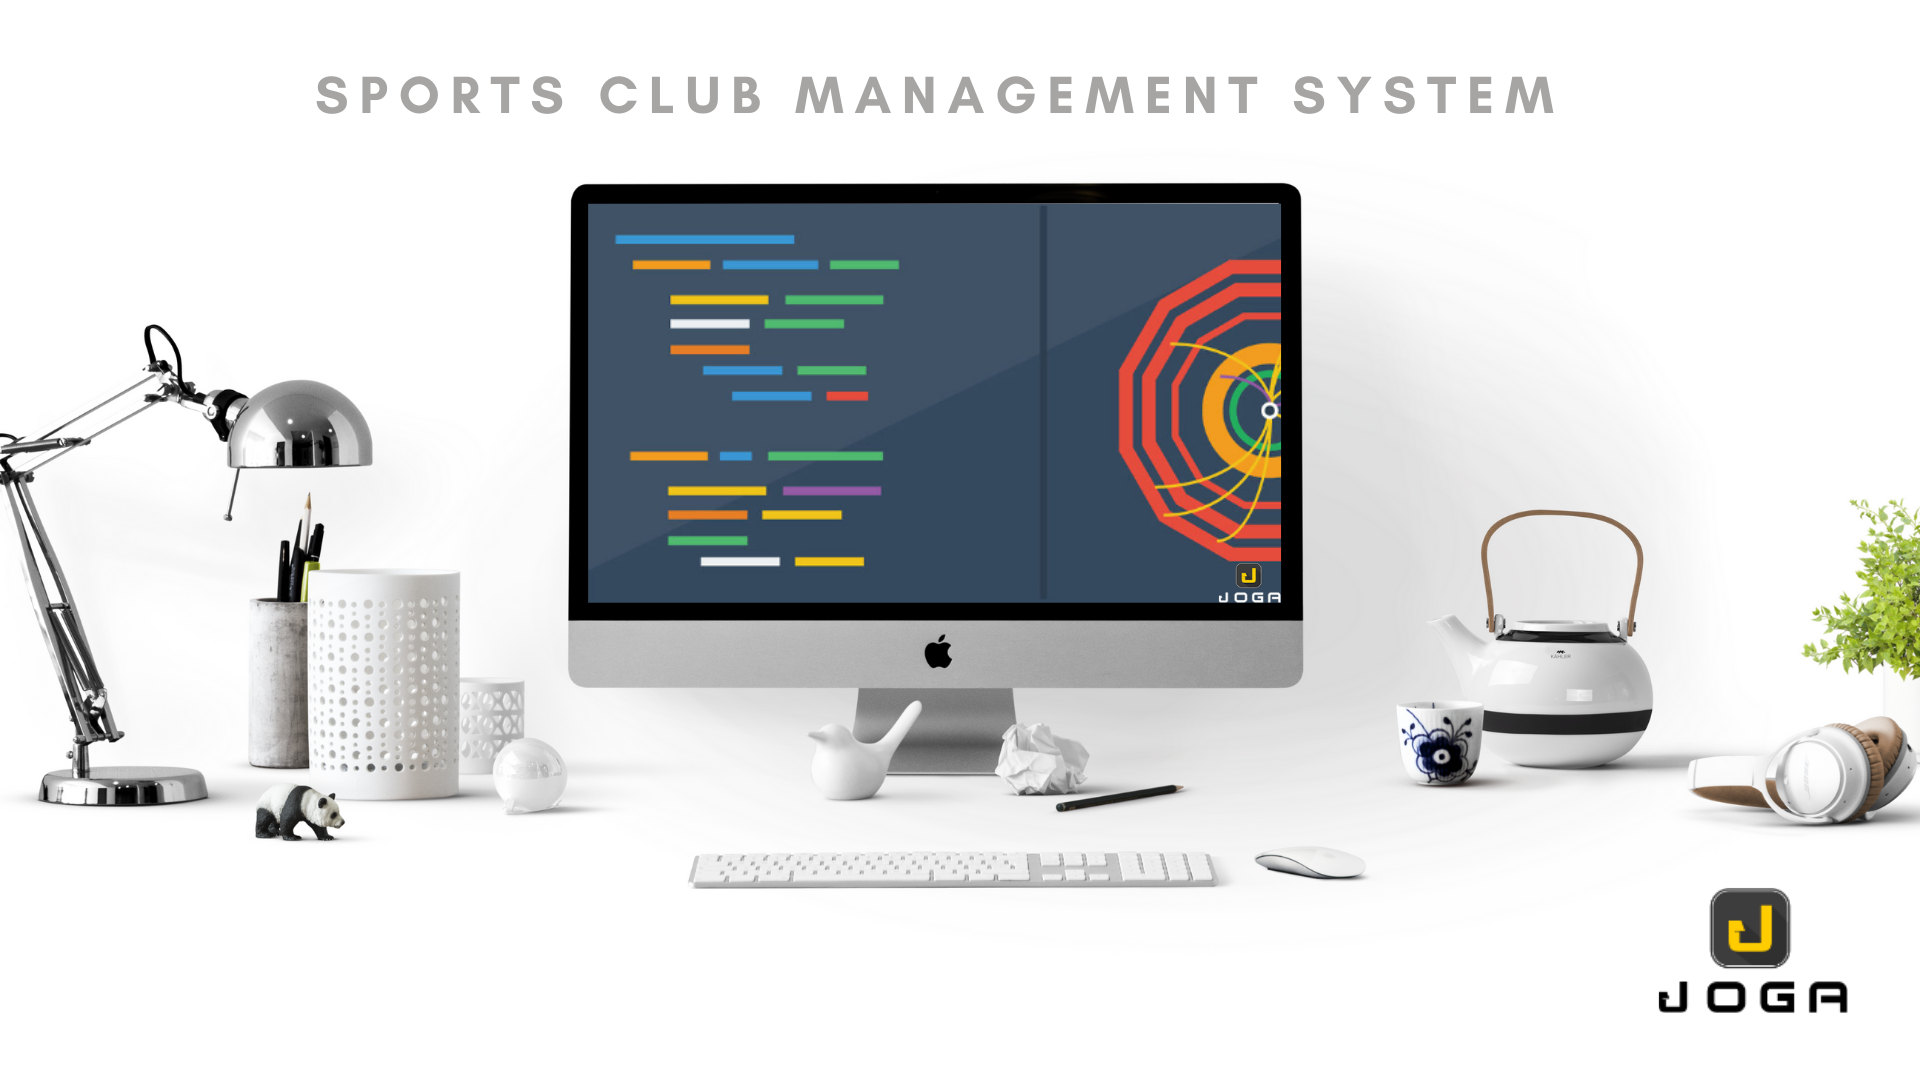 Sports Club Management System